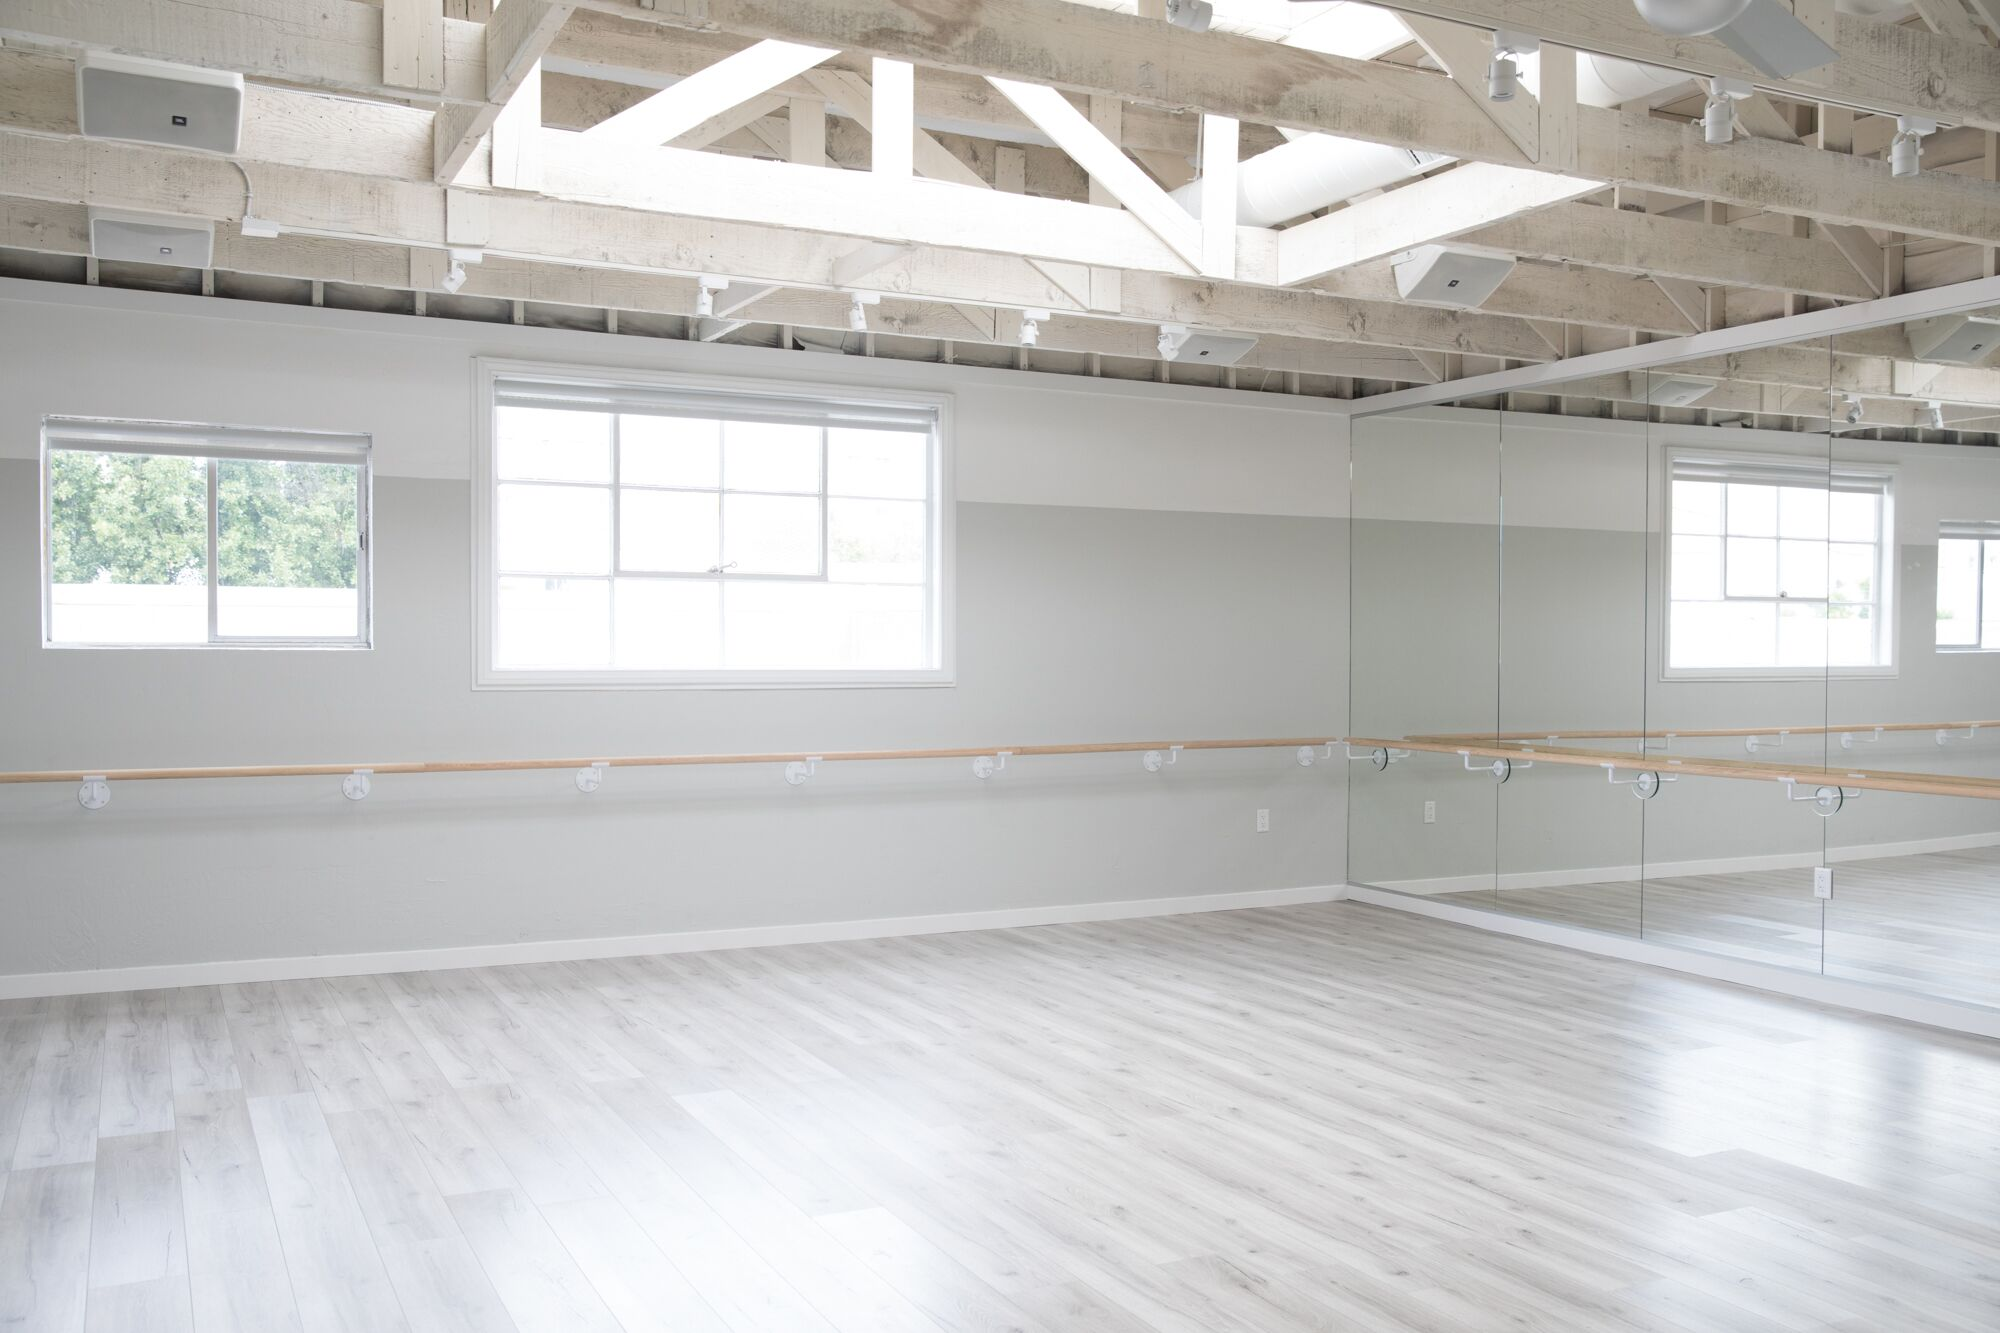 Natural light floods the barre classroom